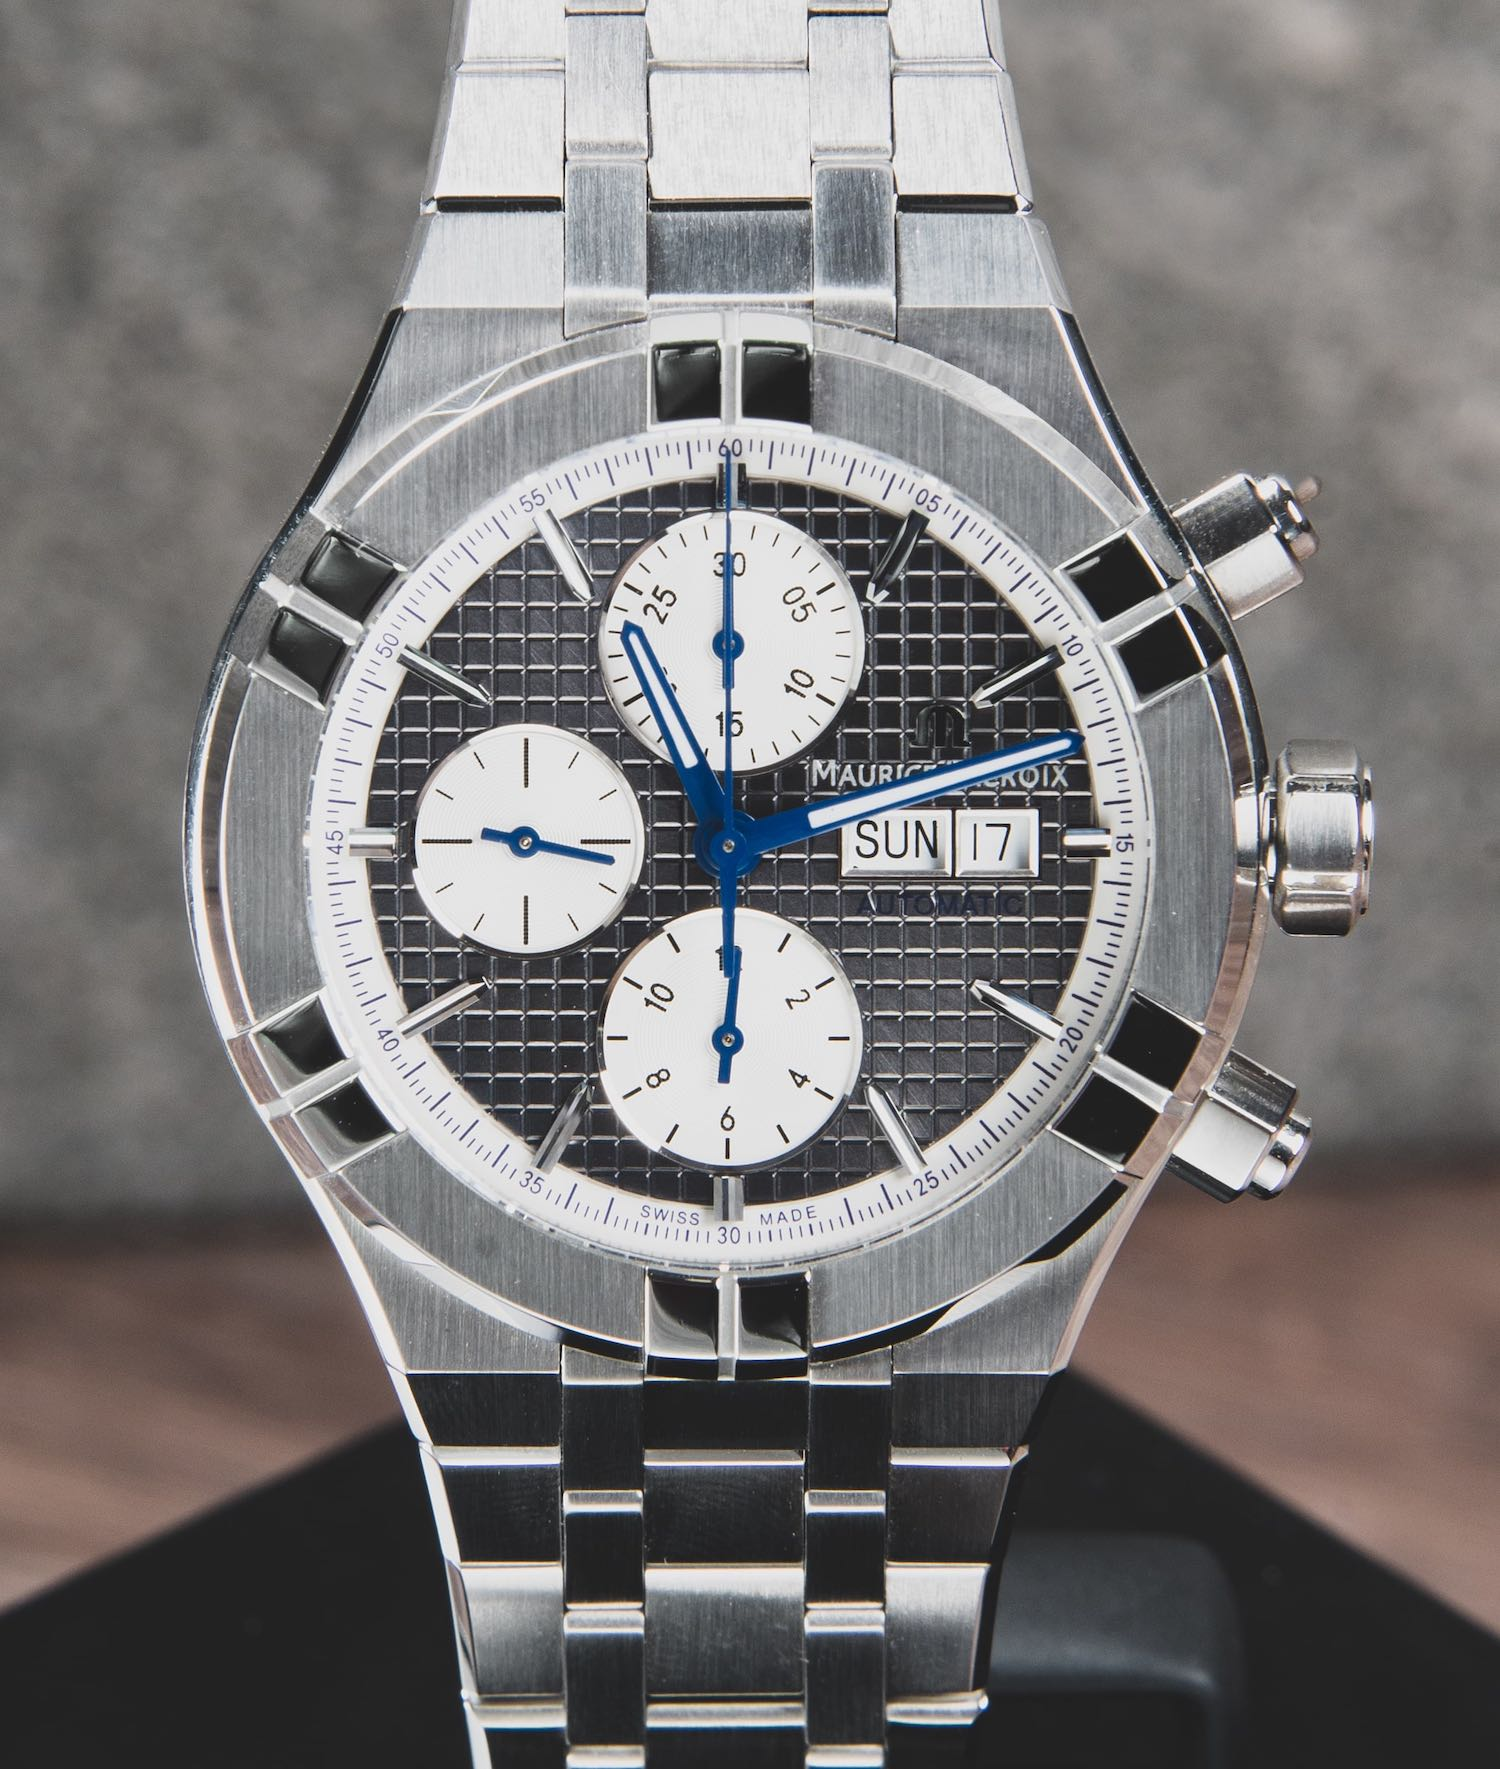 Maurice Lacroix Aikon Chronograph - Fine Watch Club